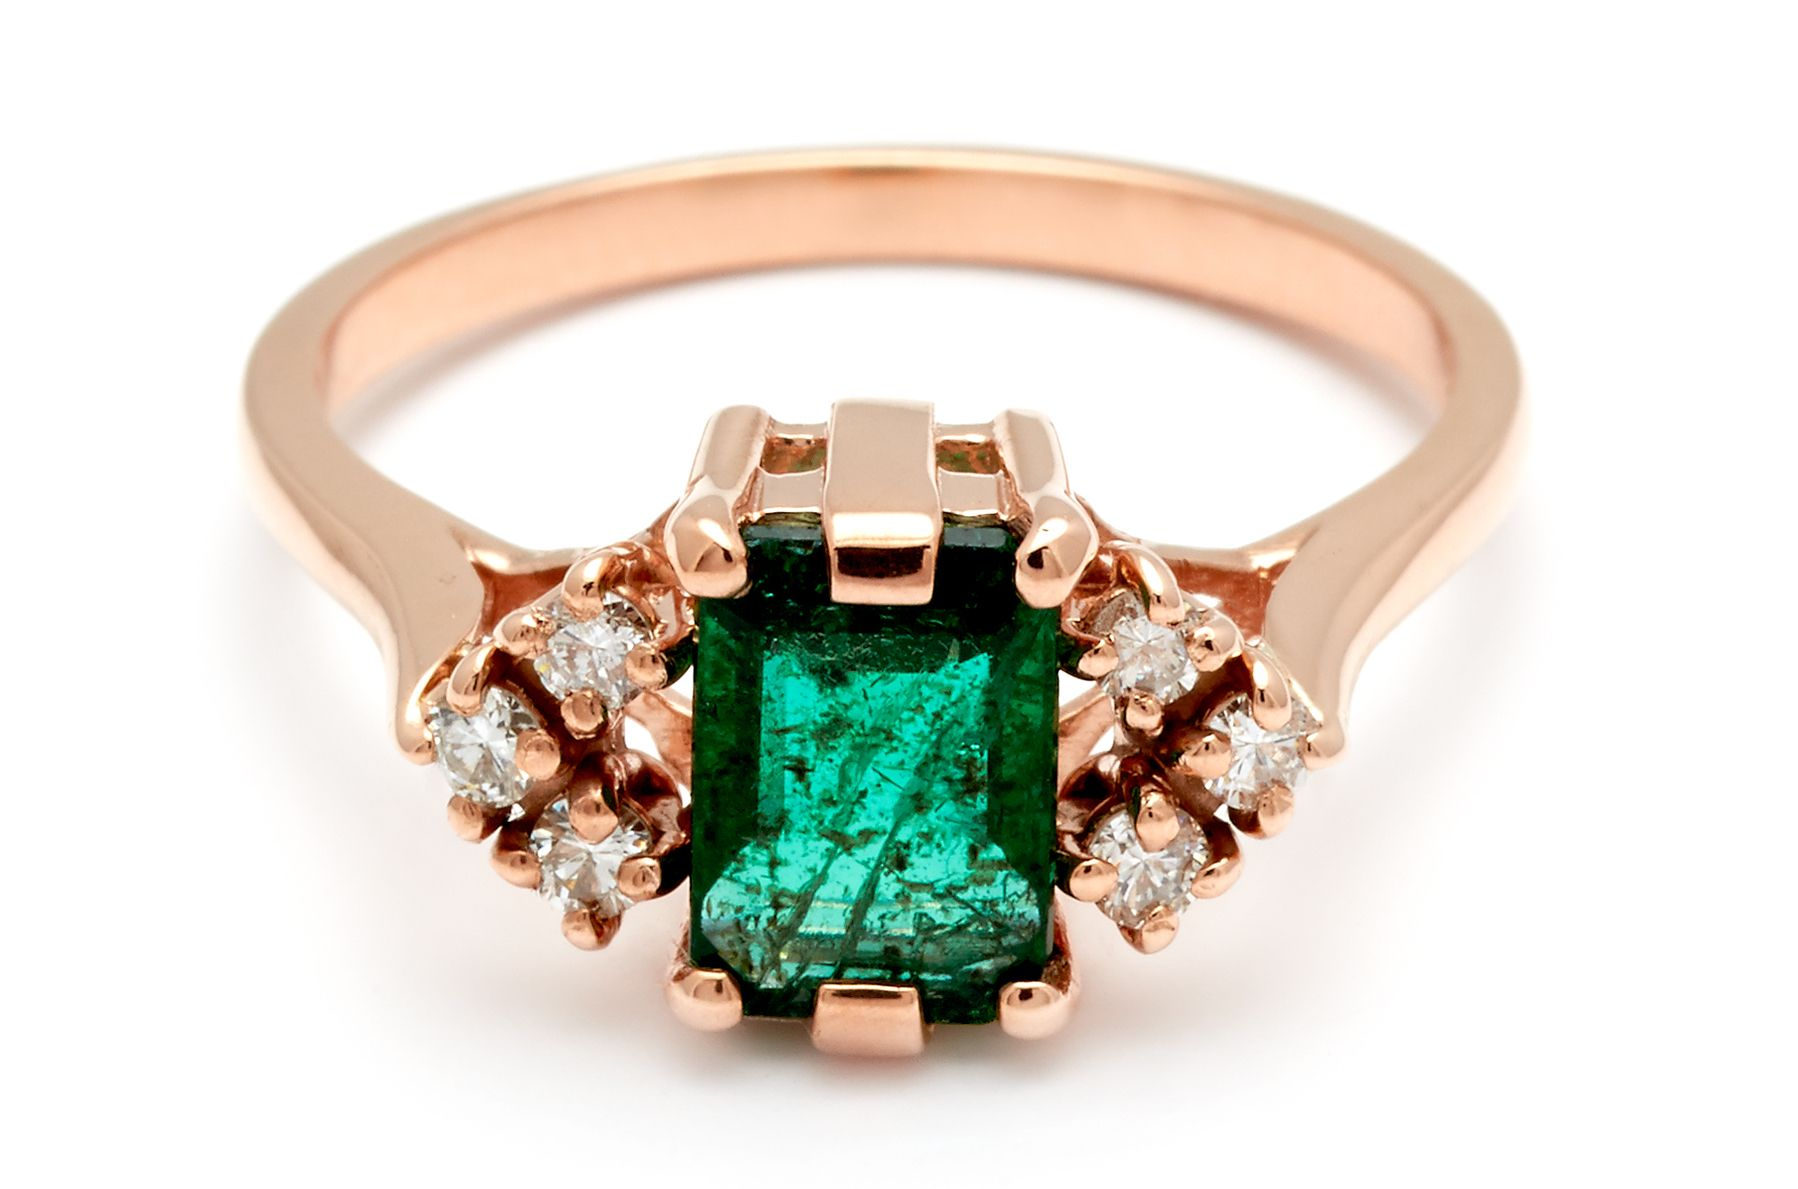 dtc cut gold white ring engagement designs rings a diamond by aria stone emerald